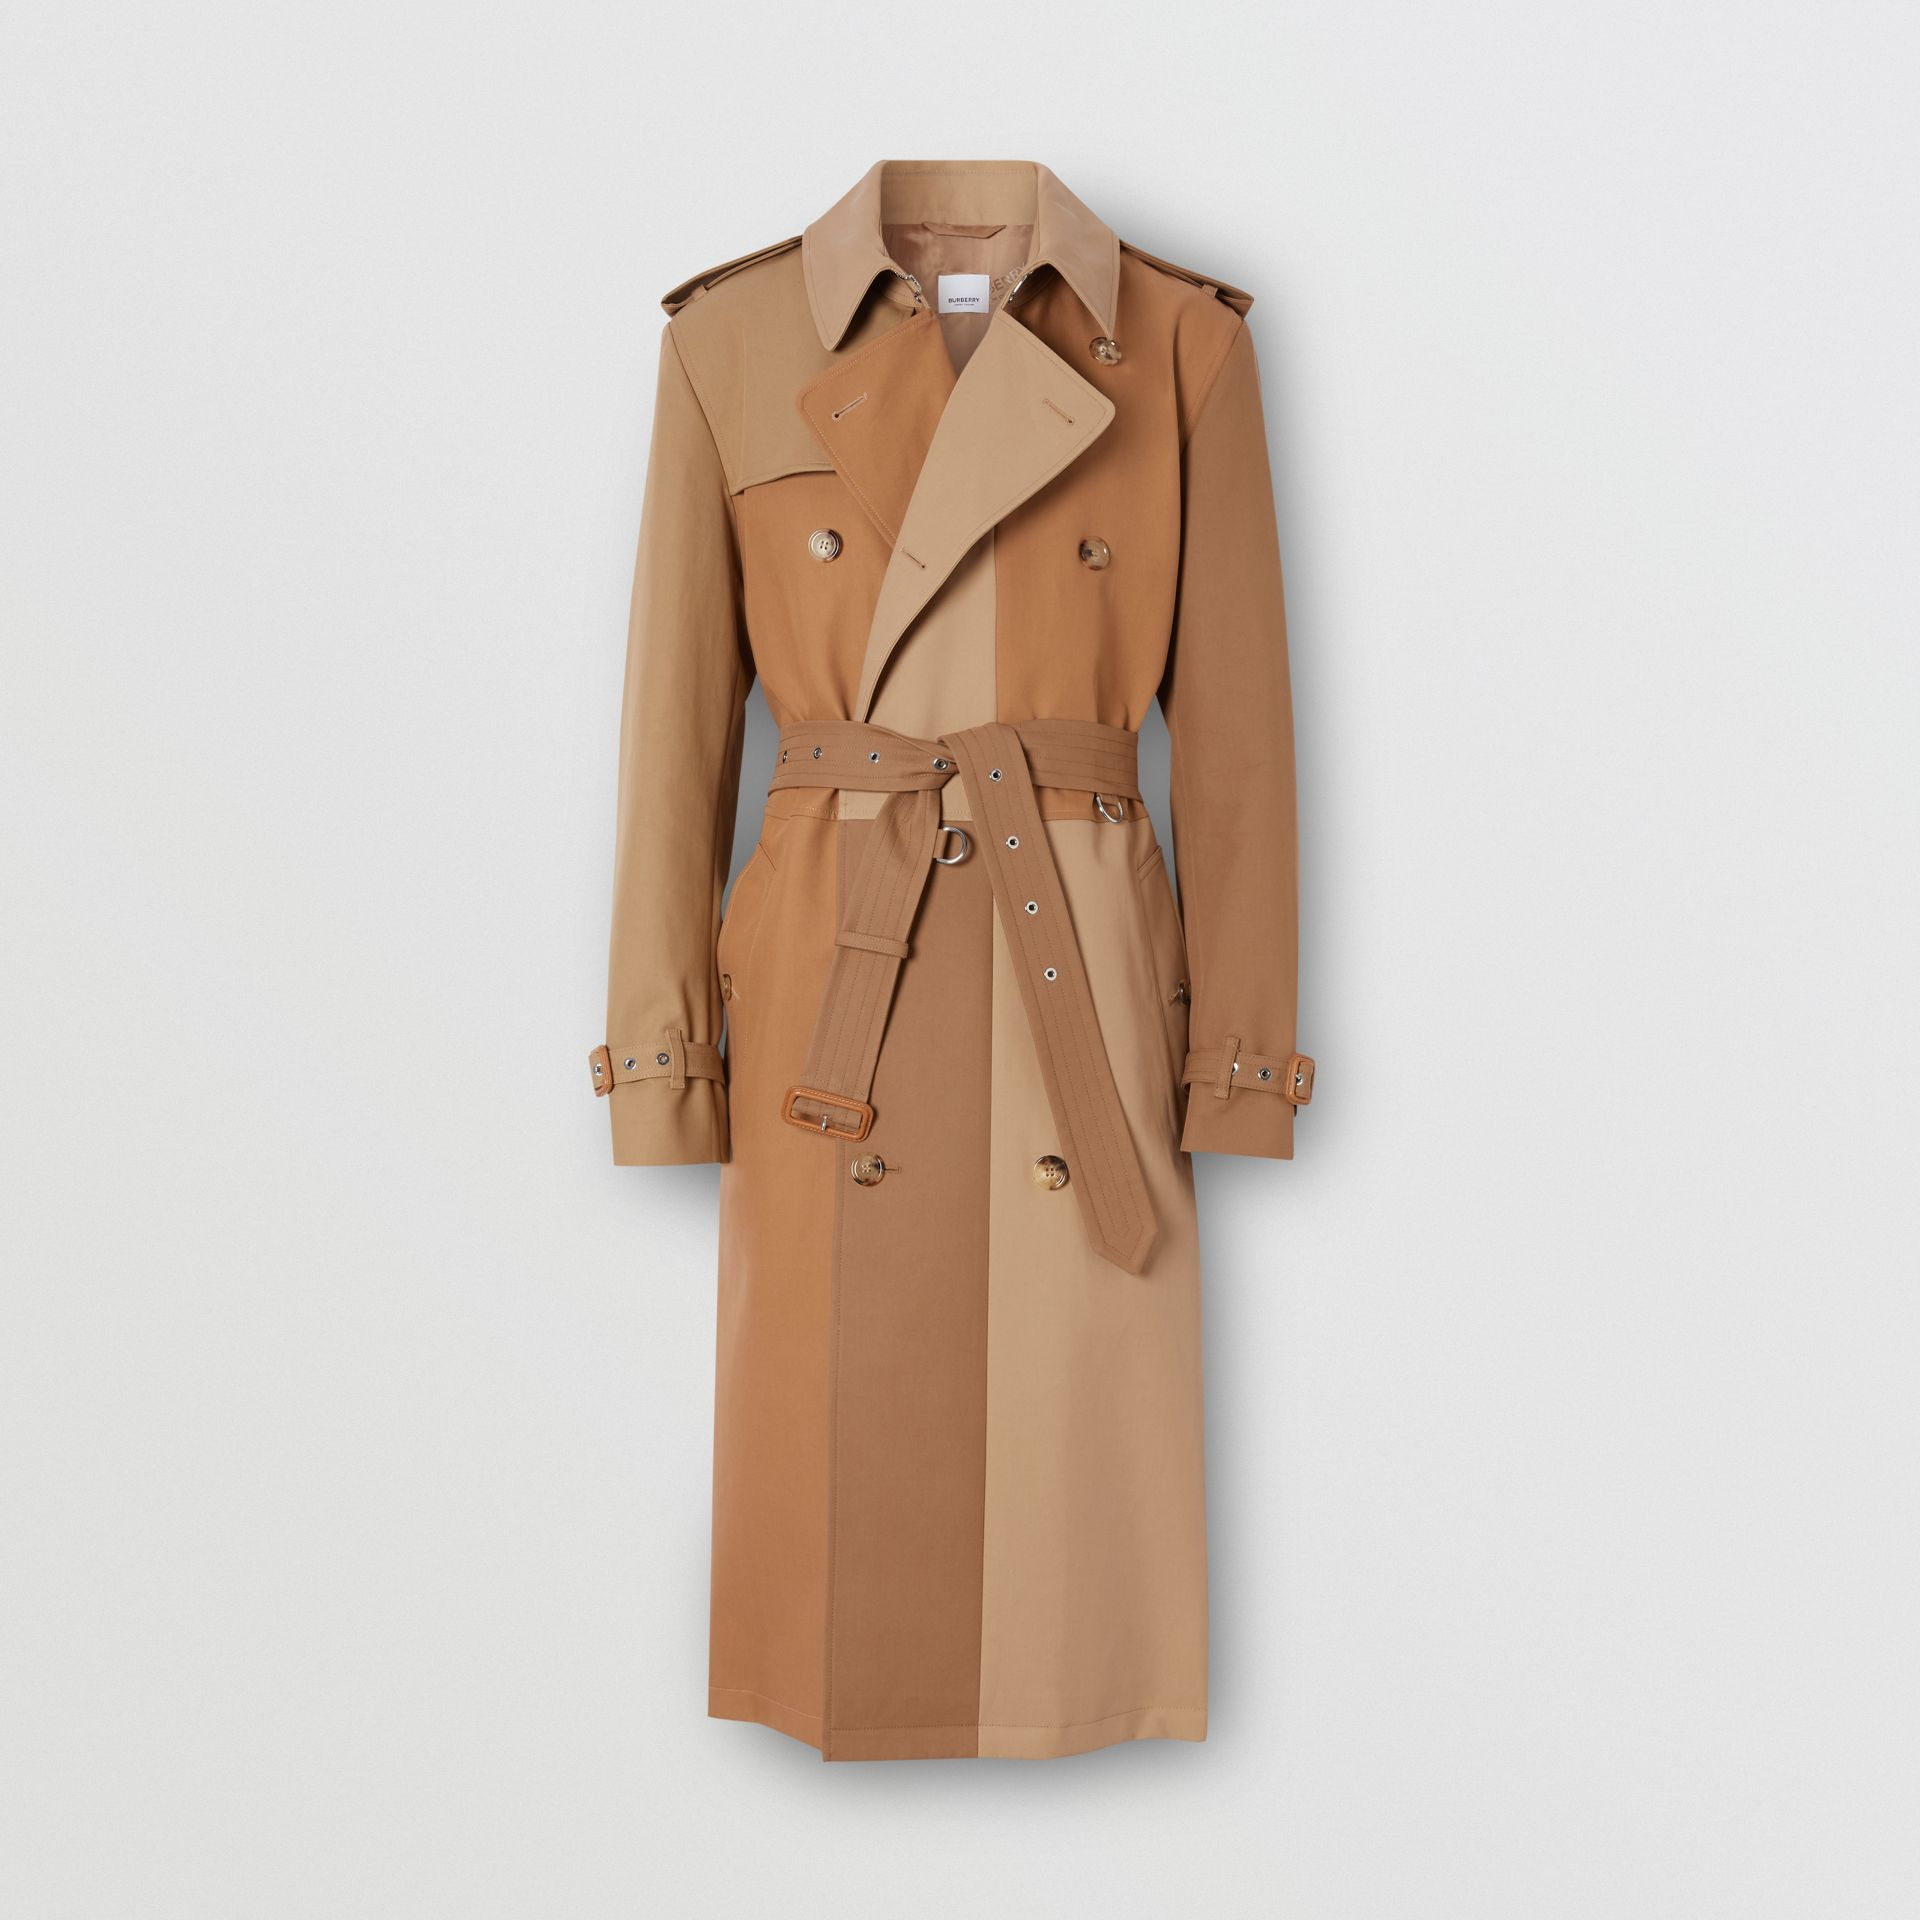 Panelled Cotton Trench Coat in Warm Camel - Men | Burberry Australia - gallery image 3